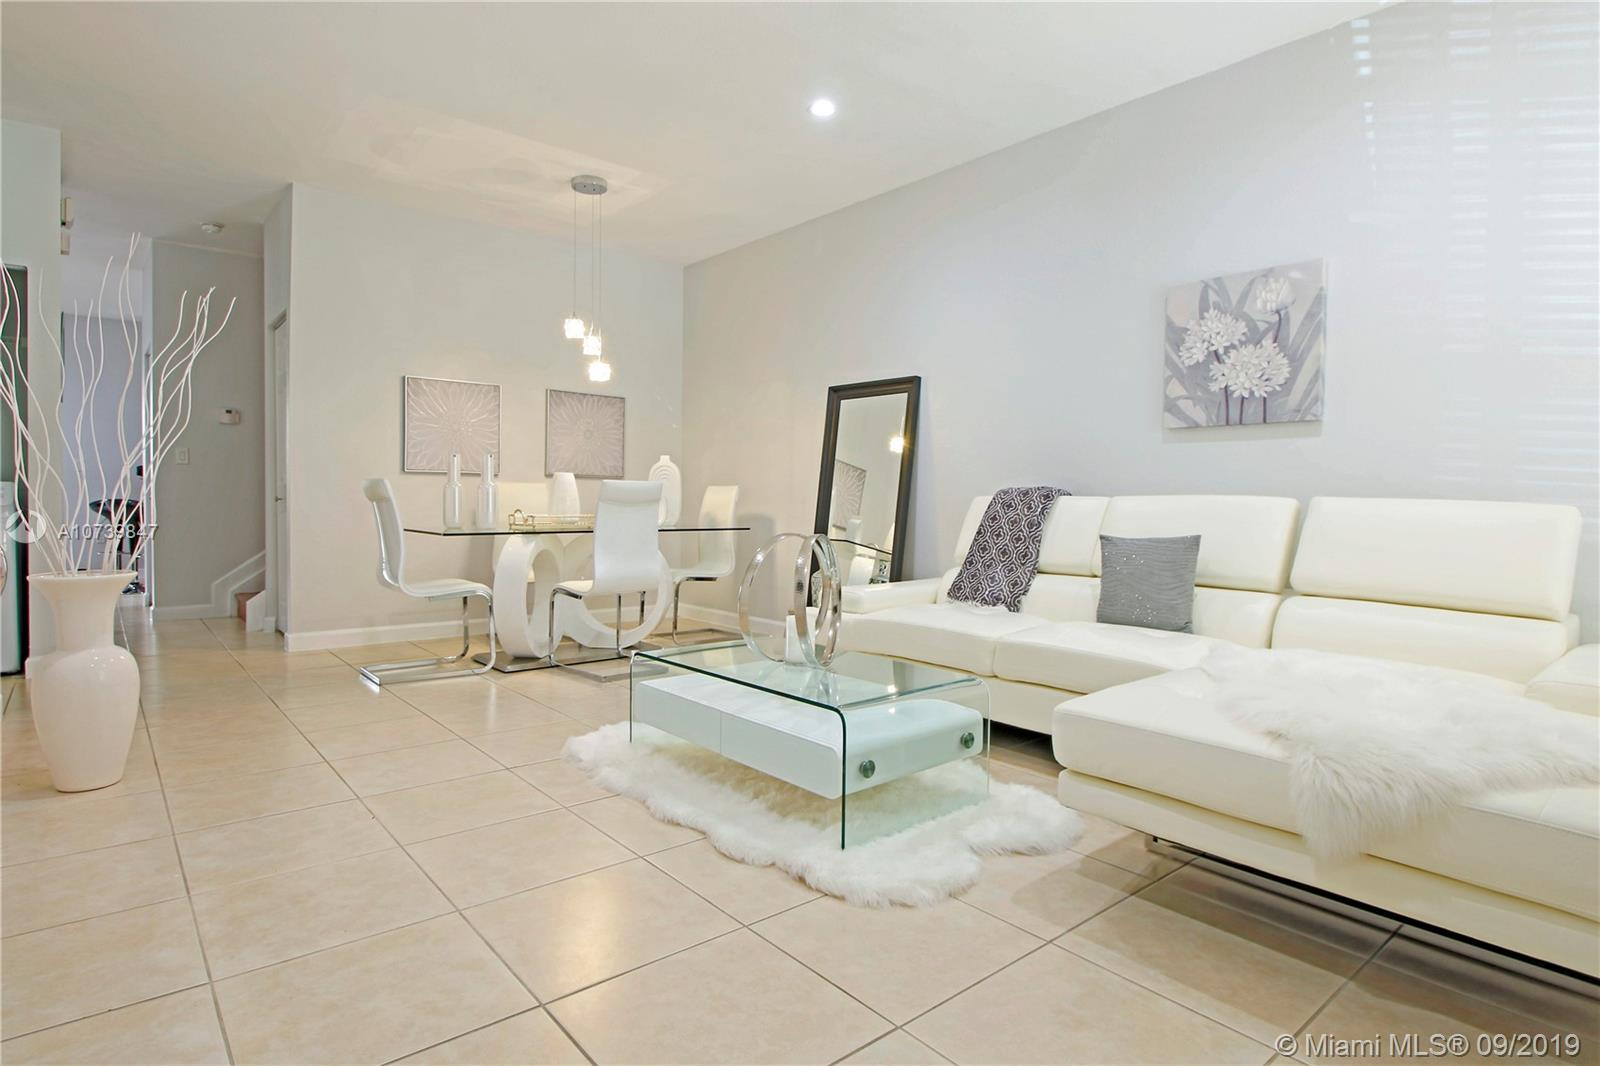 23480 SW 113th Ave, one of homes for sale in Homestead